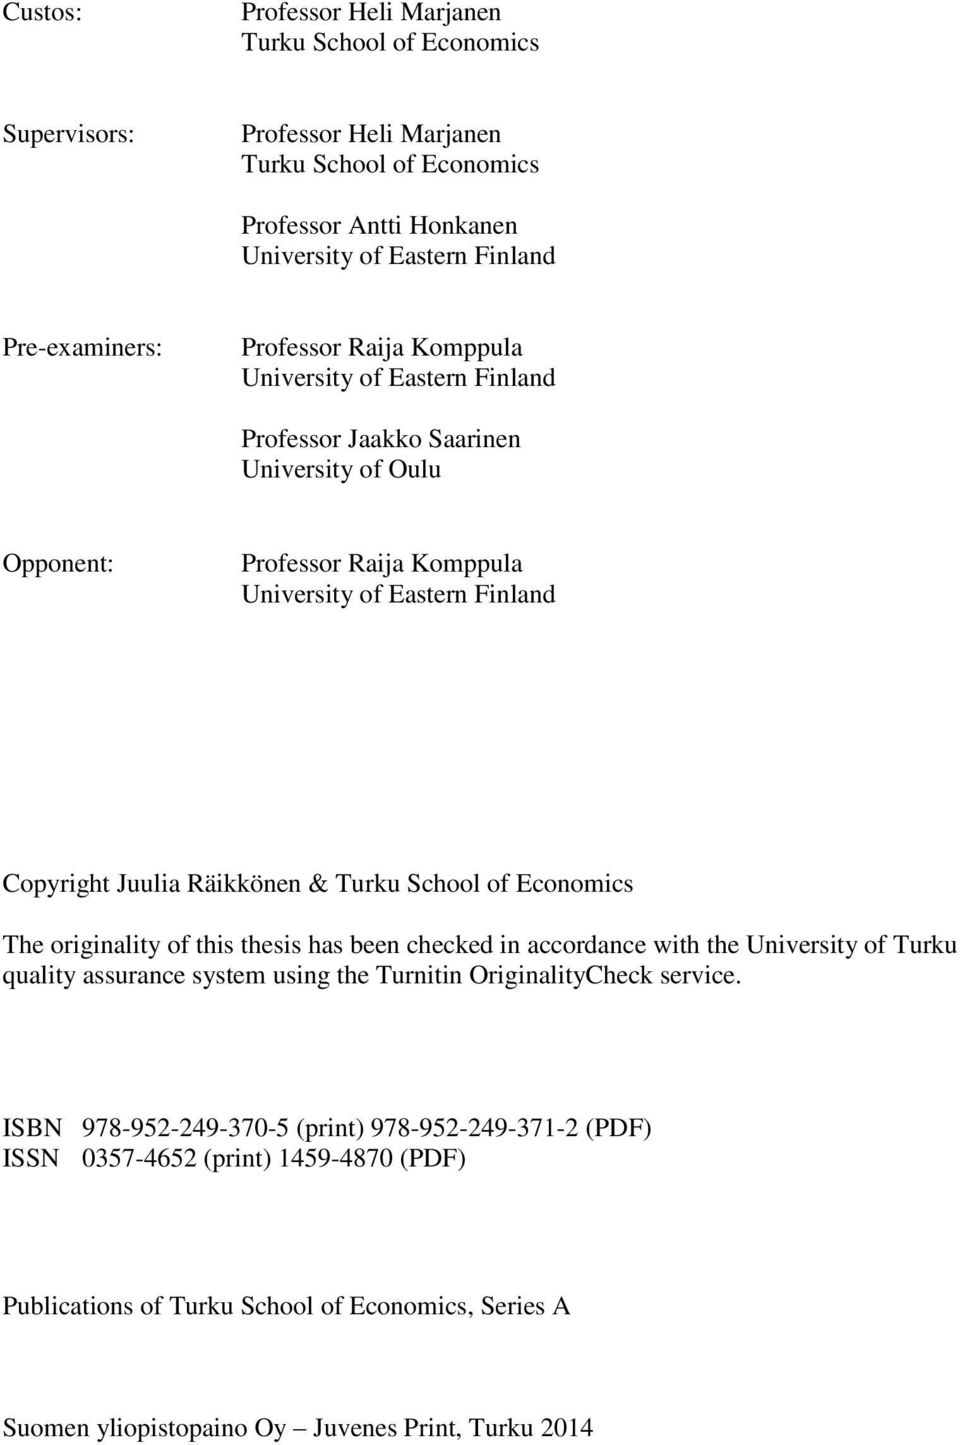 & Turku School of Economics The originality of this thesis has been checked in accordance with the University of Turku quality assurance system using the Turnitin OriginalityCheck service.